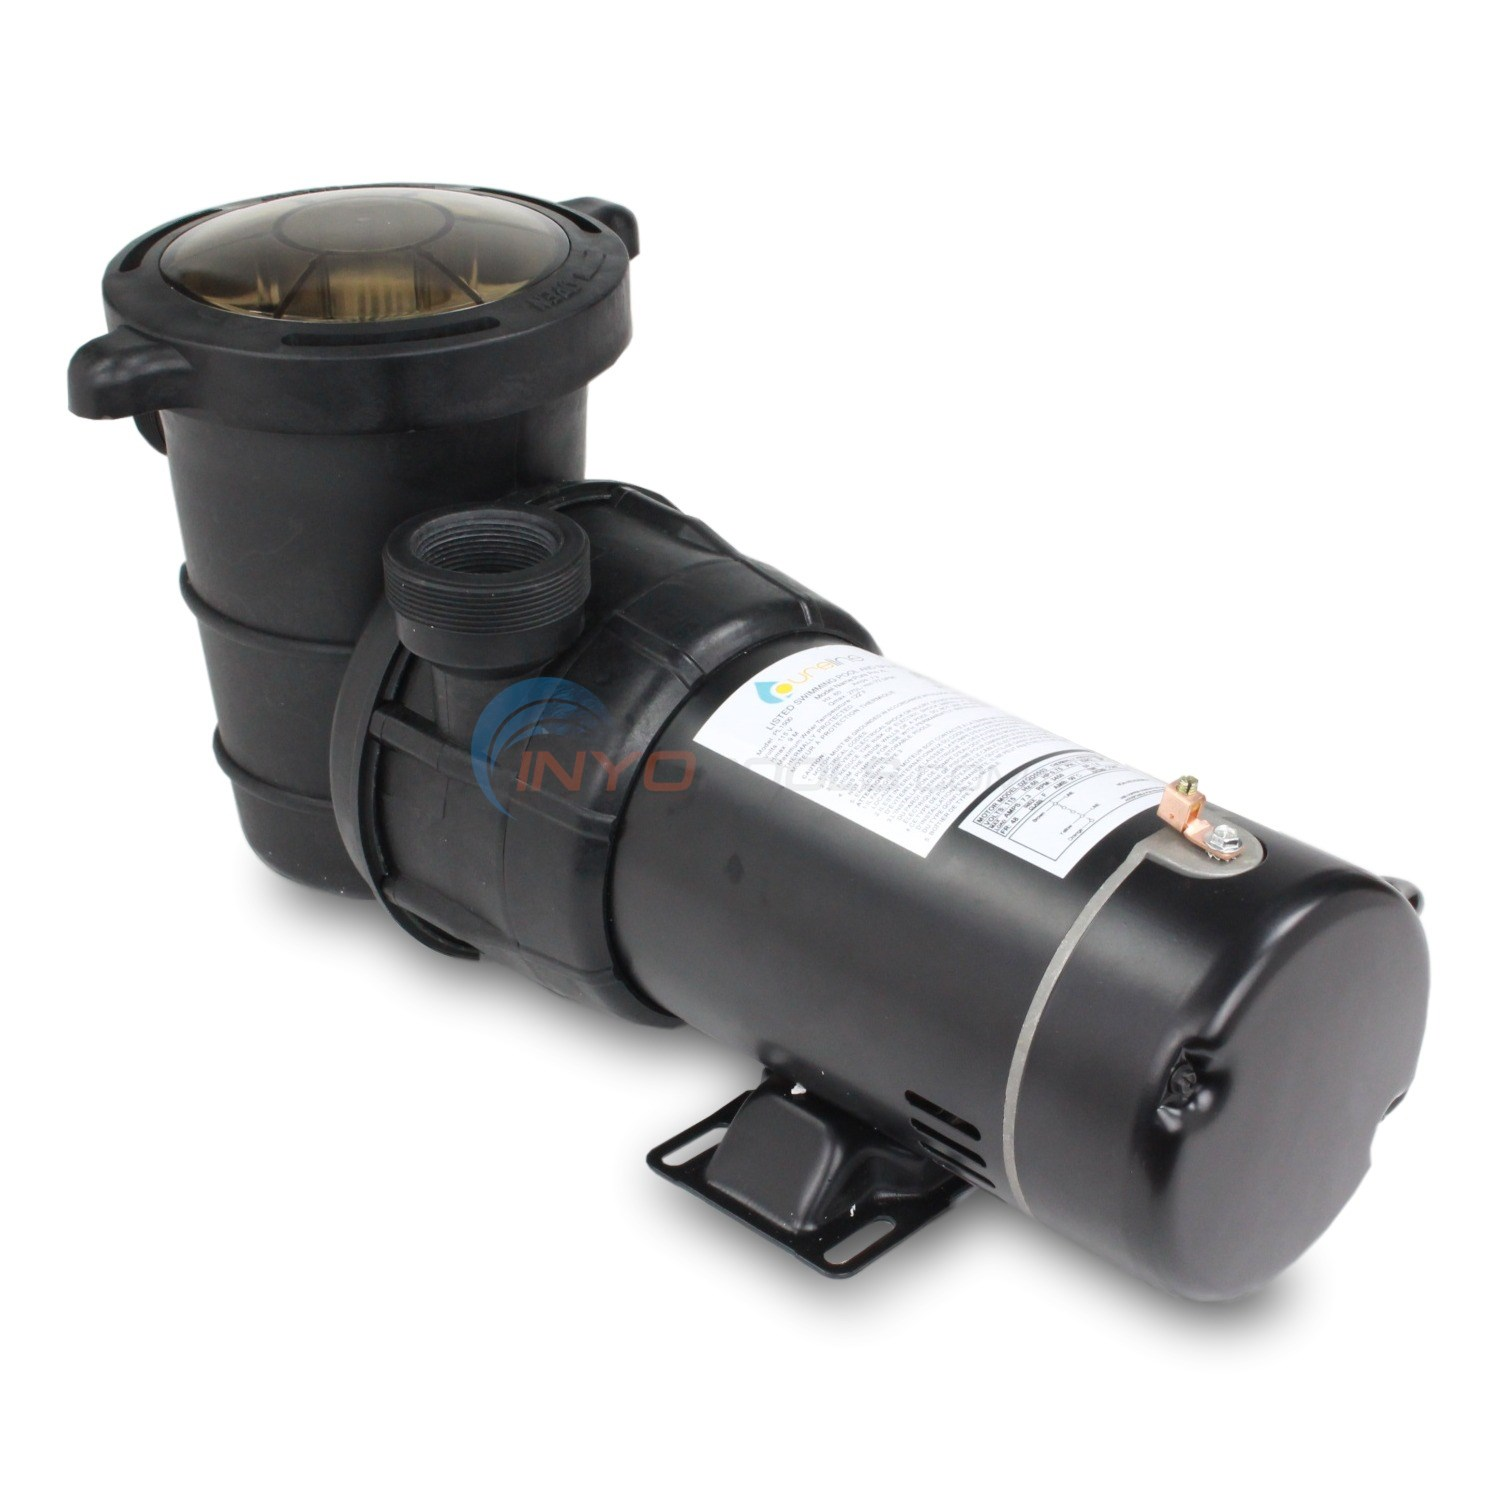 pureline pl1500 02?format=jpg&scale=both&anchor=middlecenter&autorotate=true&mode=pad&width=650&height=650 pureline 1 hp above ground pool pump ne6170b inyopools com  at bakdesigns.co